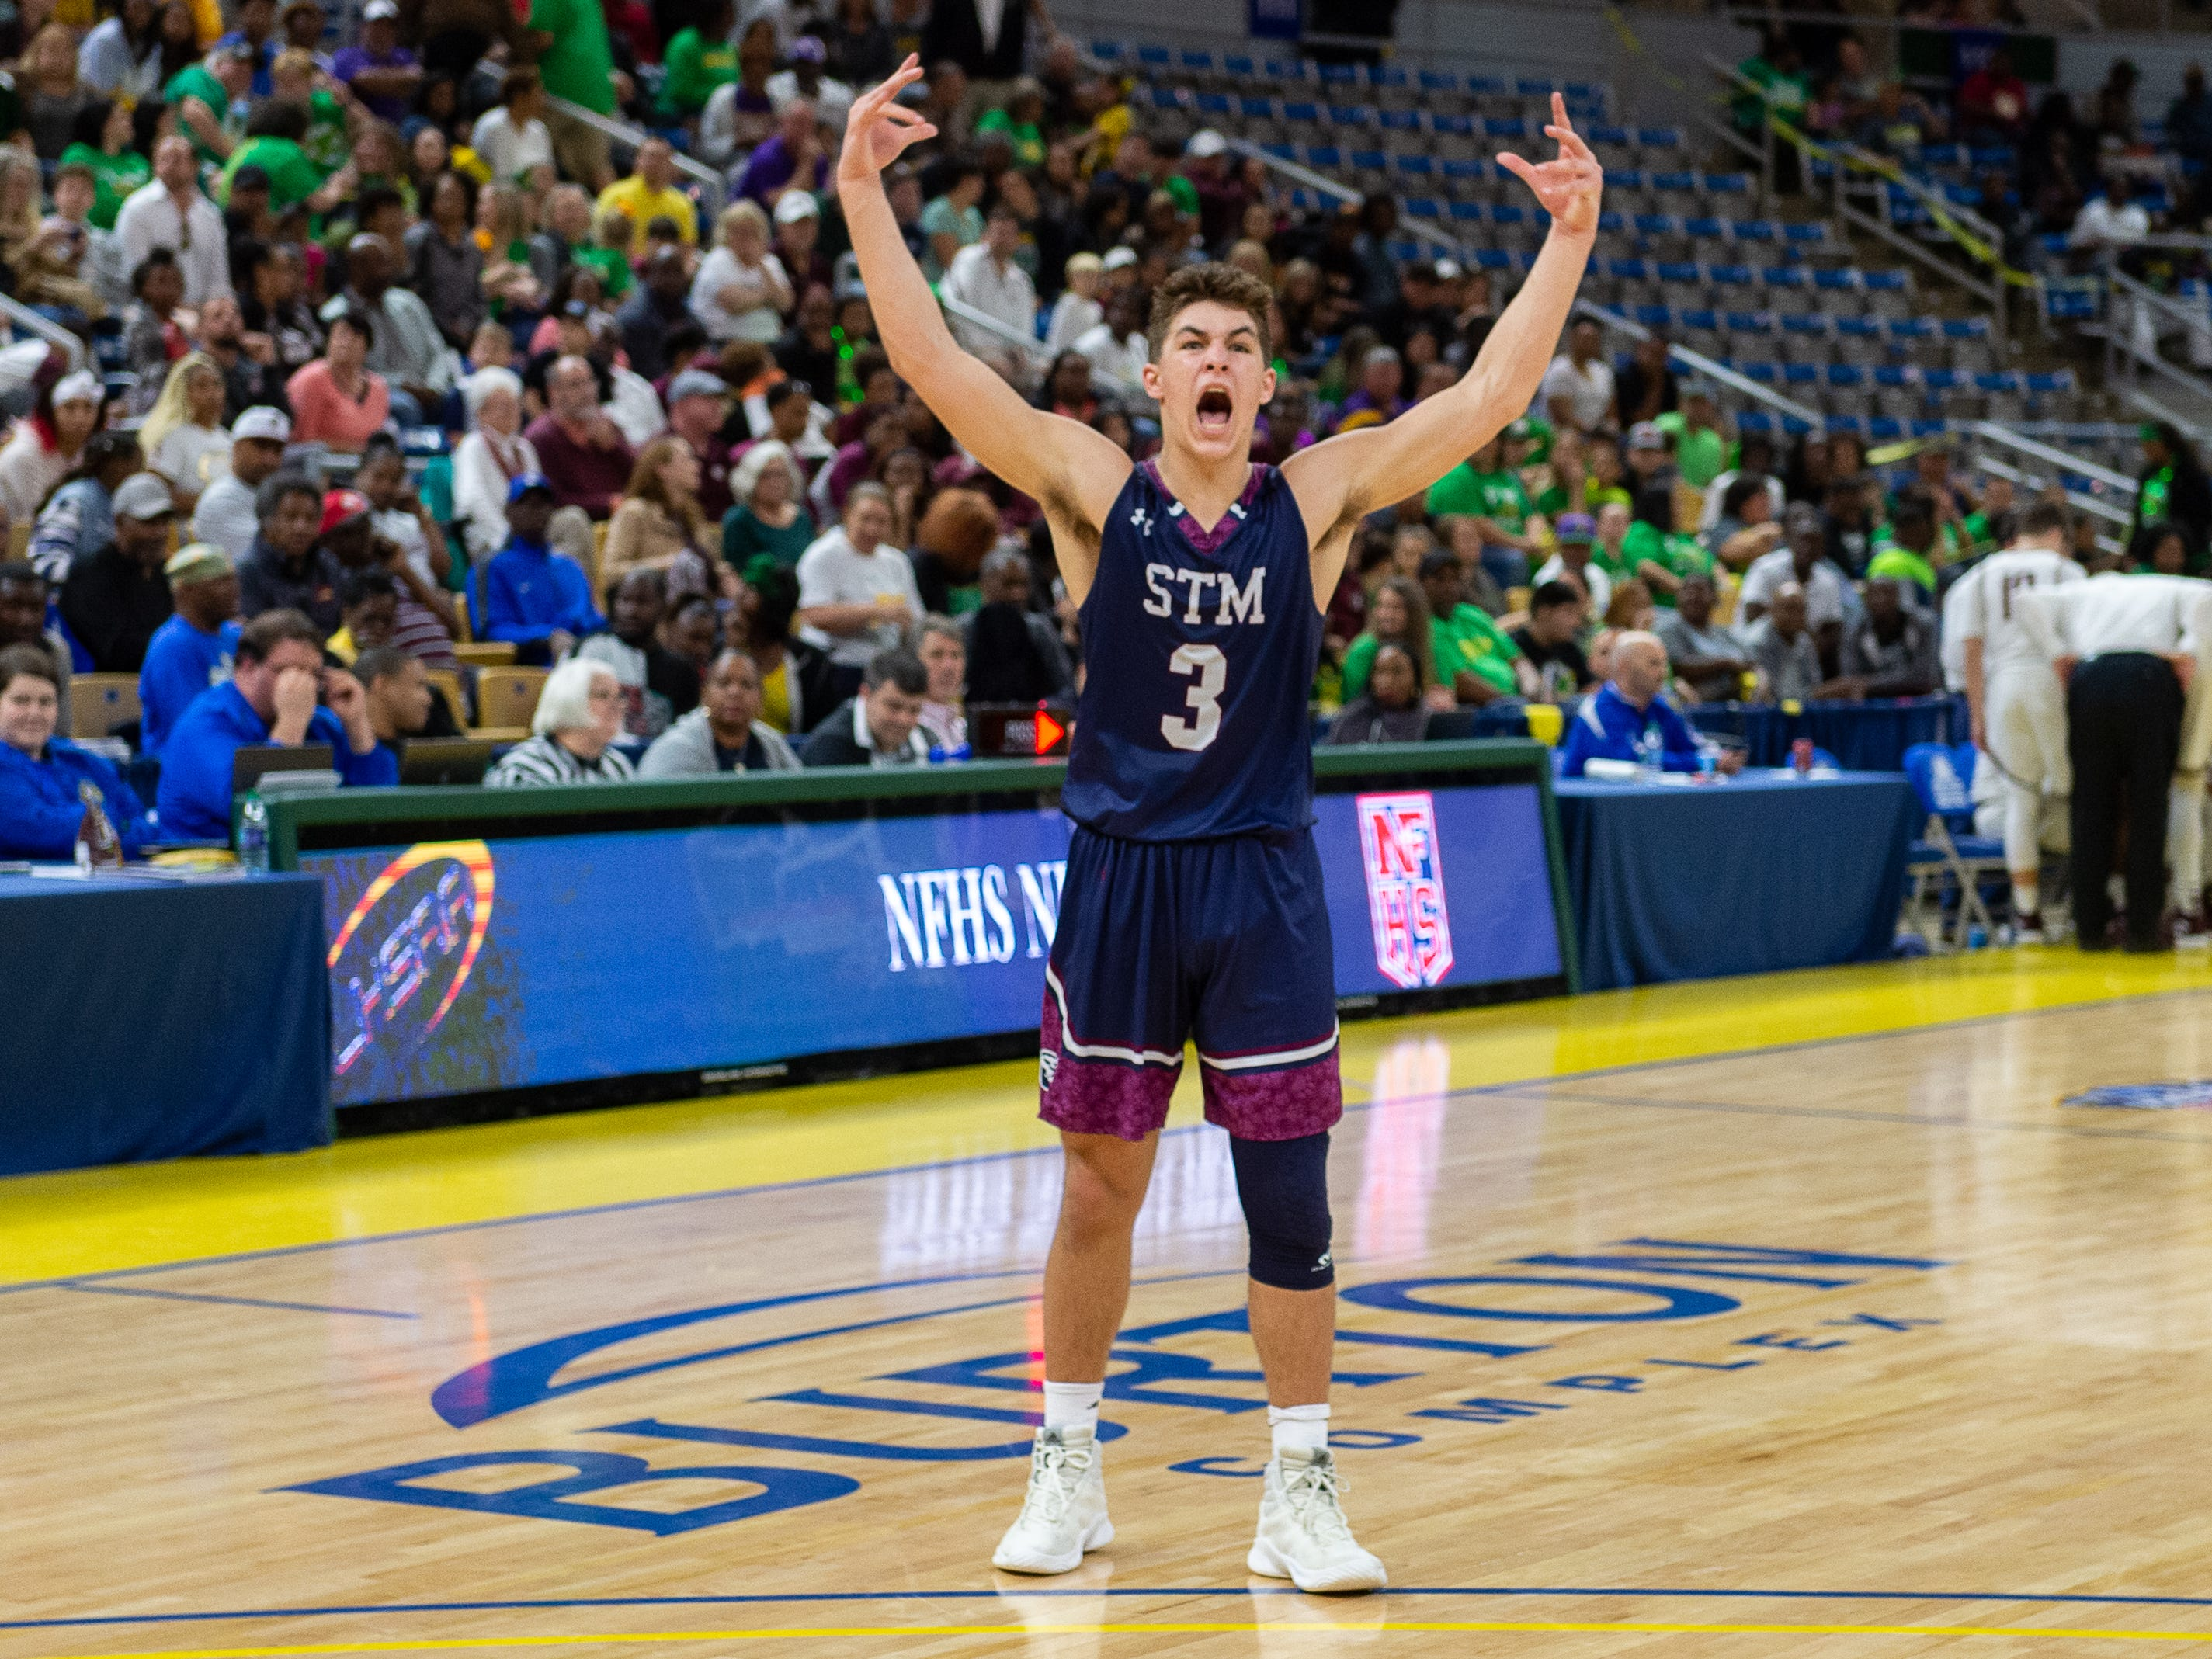 Carter Domingue pumps up the fans as The STM Cougars beat DeLaSalle in double overtime to win the Allstate Sugar Bowl/LHSAA Boys' Marsh Madness Div II State Championship. Saturday, March 9, 2019.